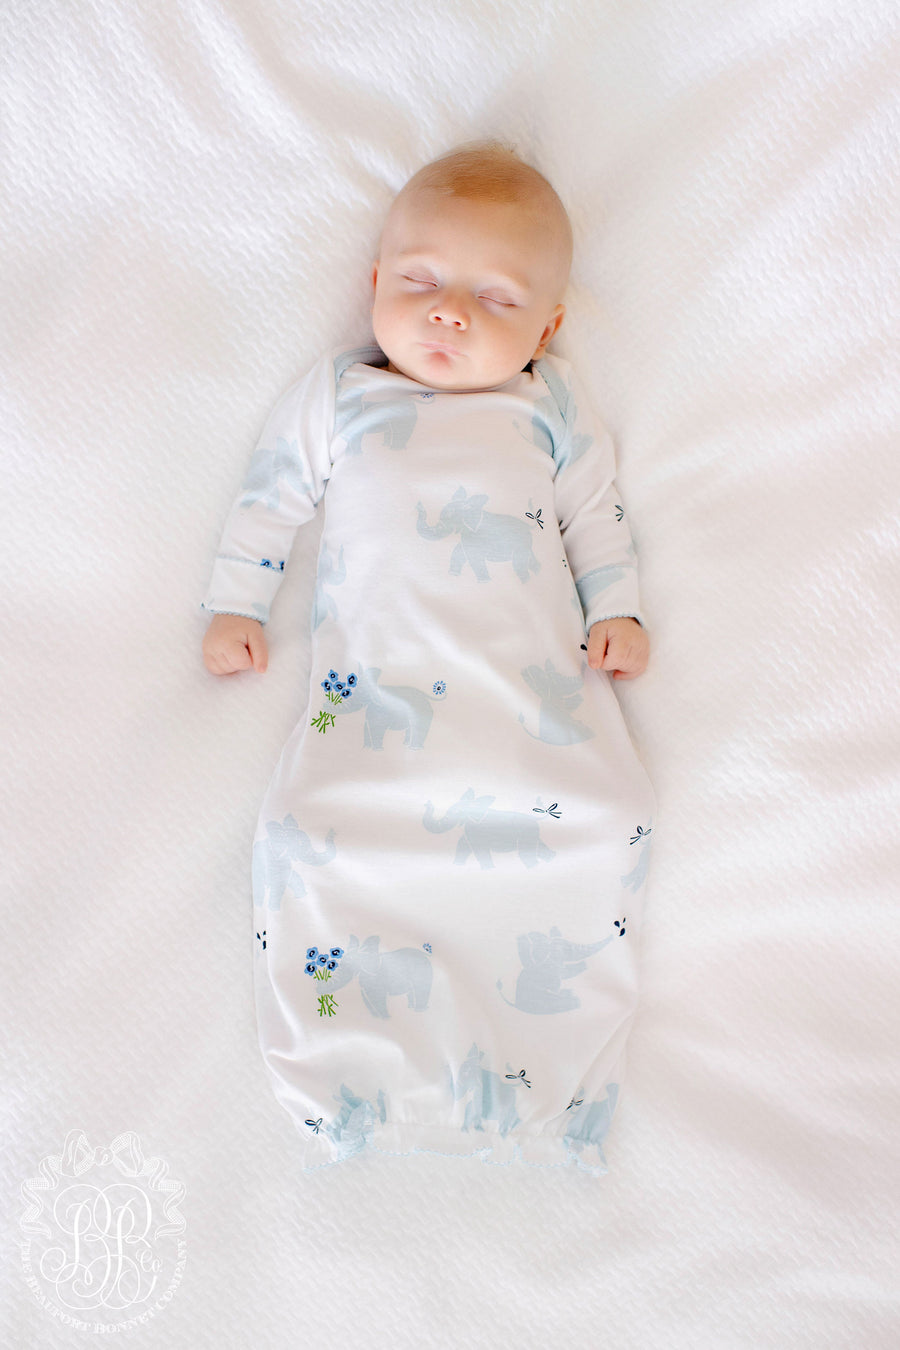 Adorable Everyday Gown - Precious Peanut with Buckhead Blue